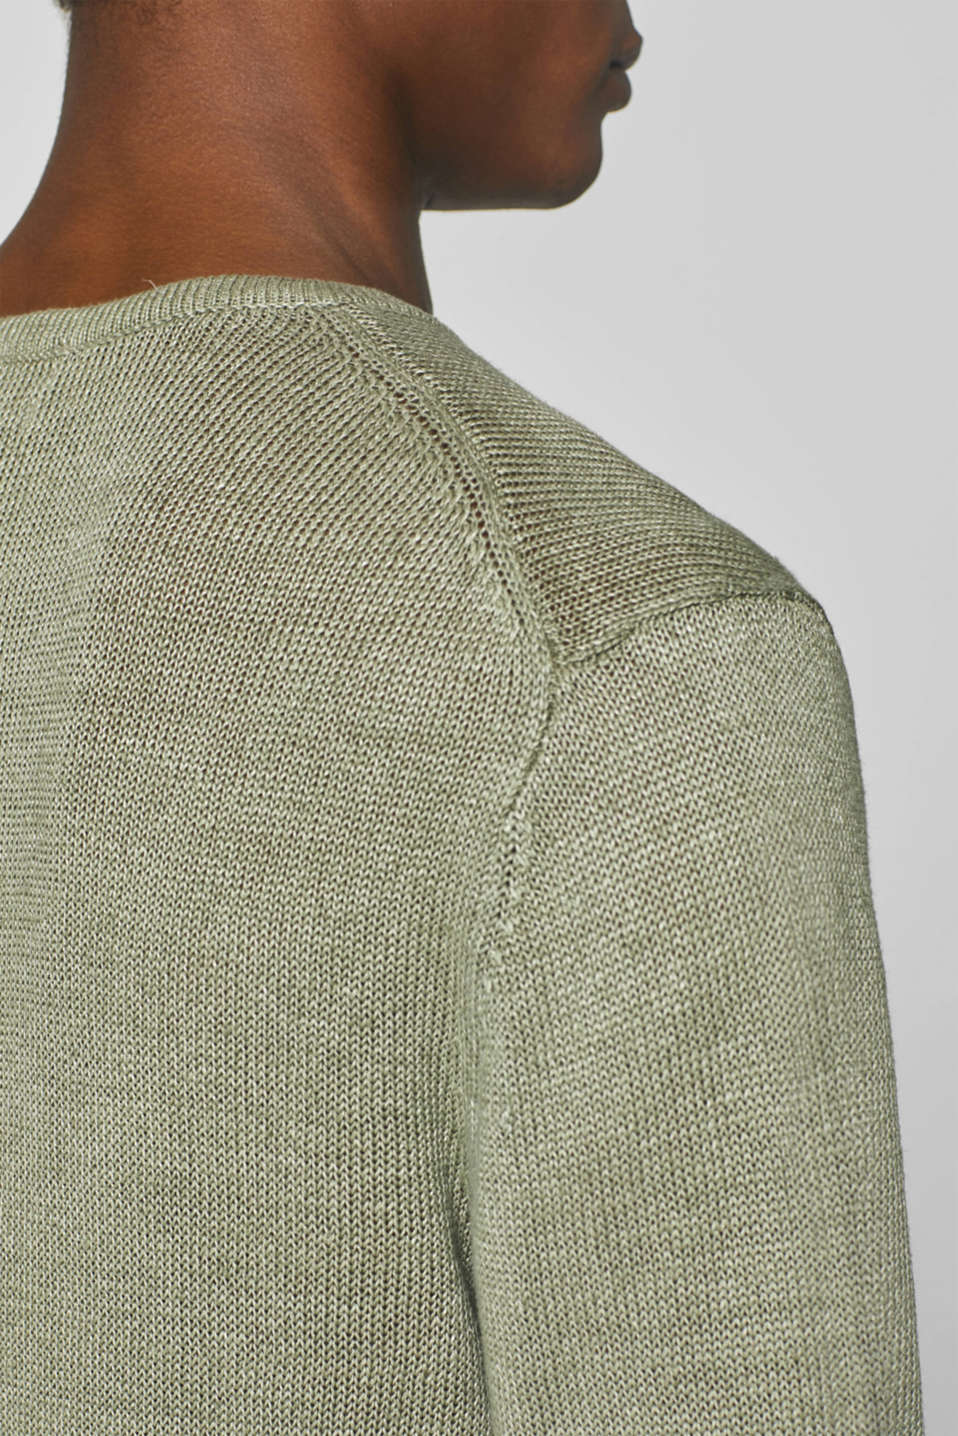 Sweaters, LIGHT KHAKI, detail image number 7